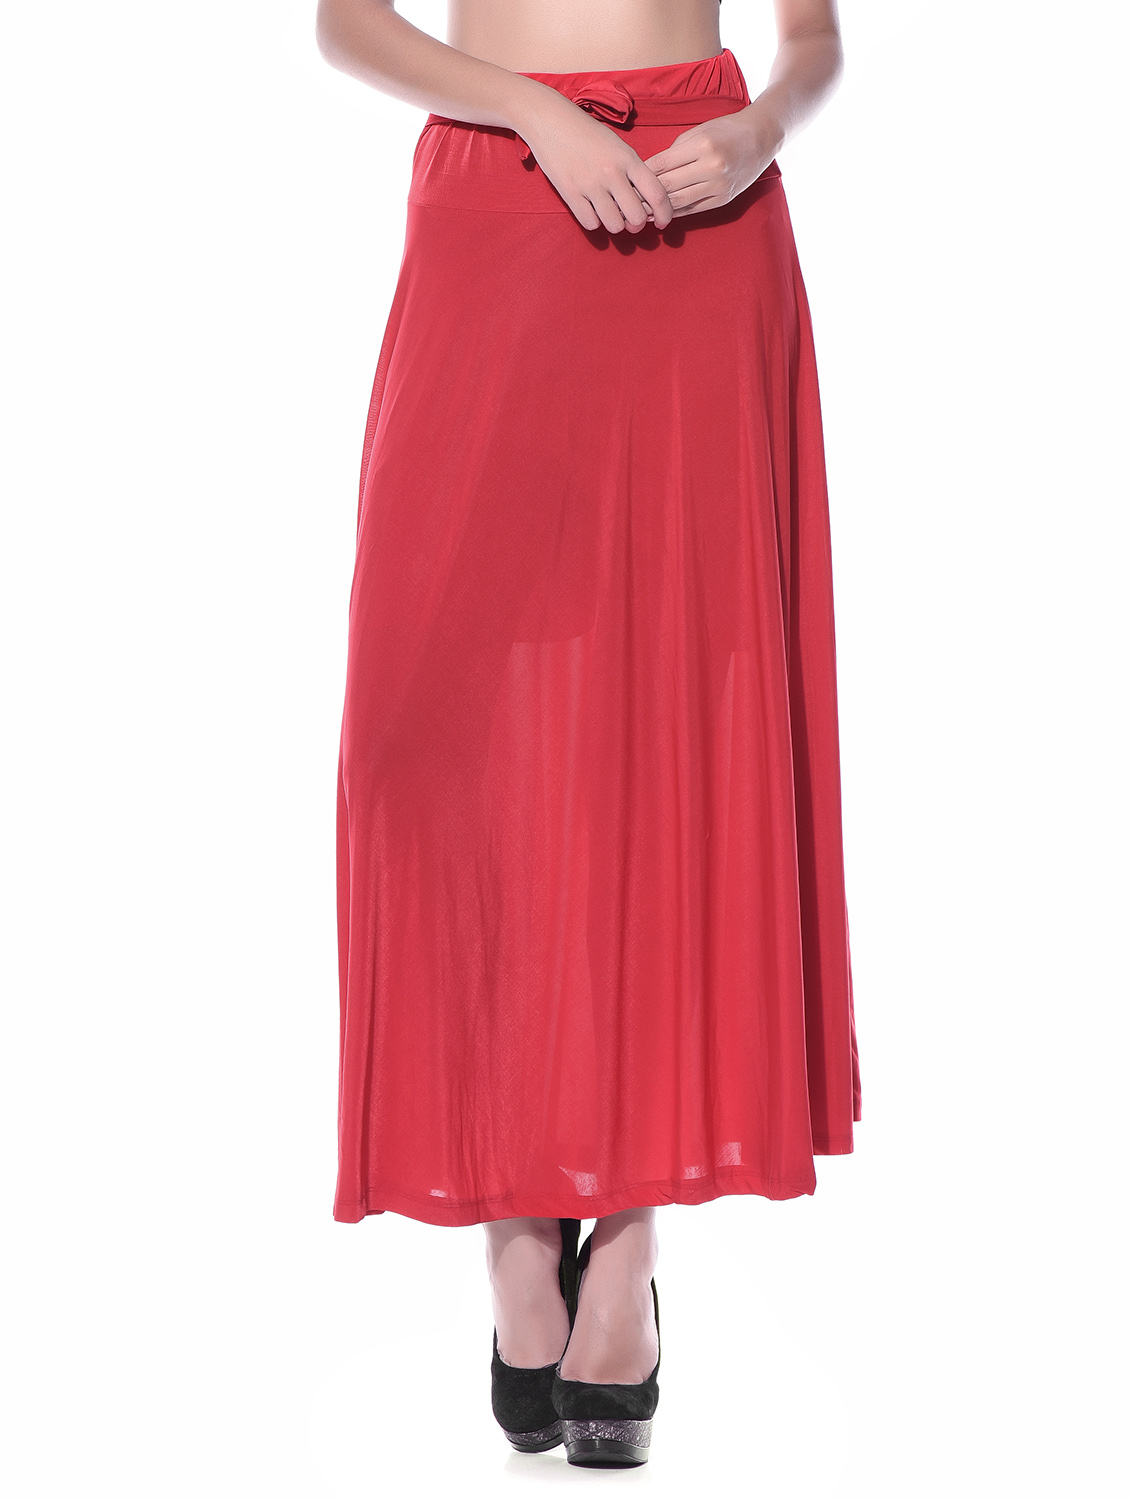 Carnival Red Color Silk Skirt